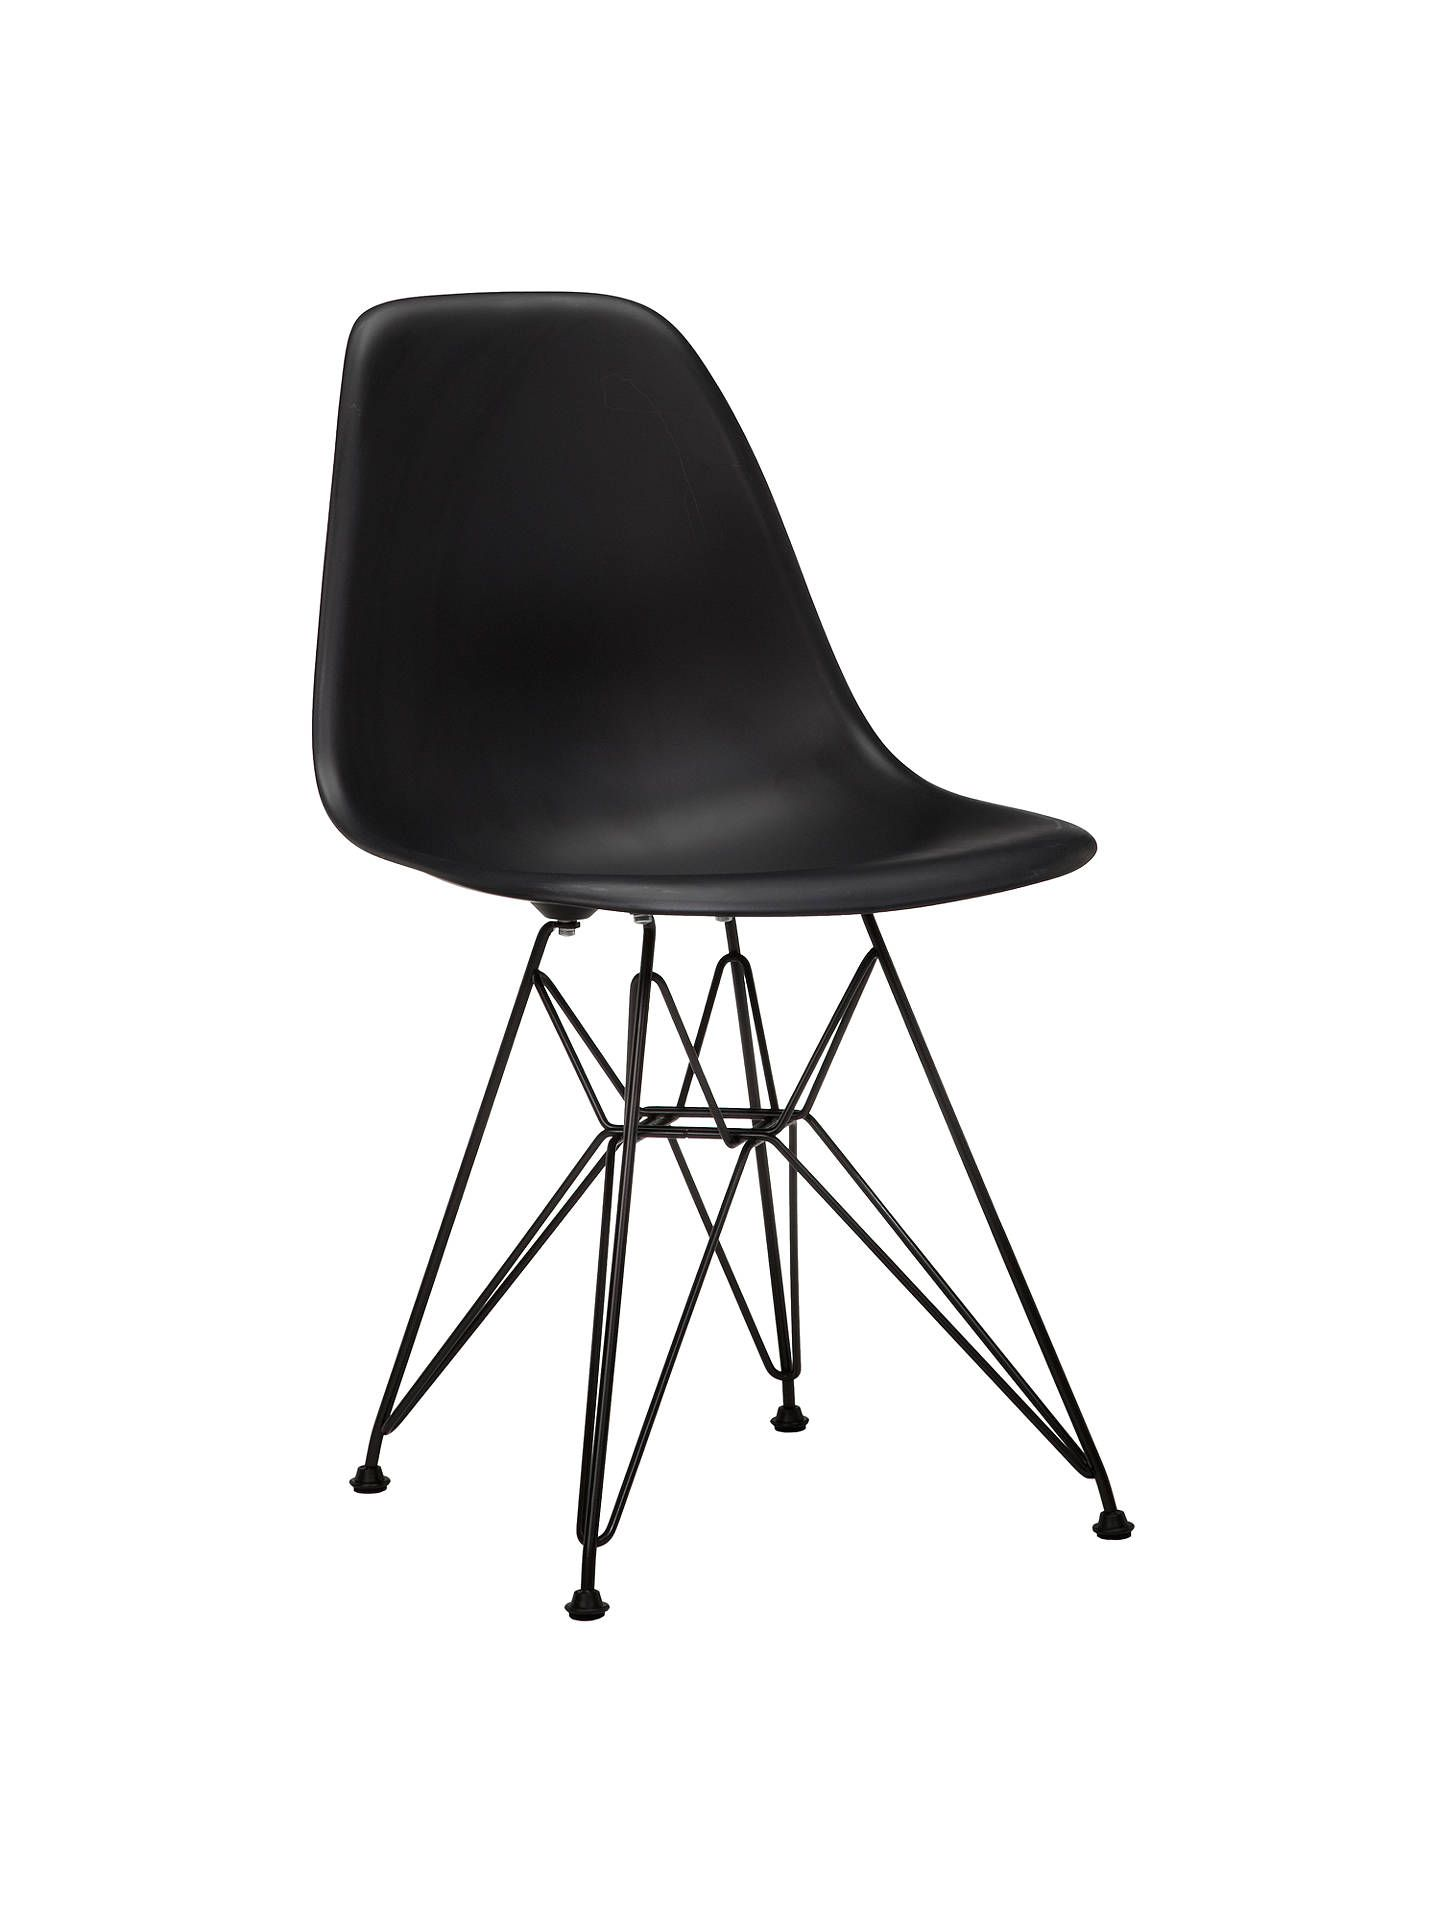 Charles & Ray Eames for Herman MIller / Vitra, mod. DSS